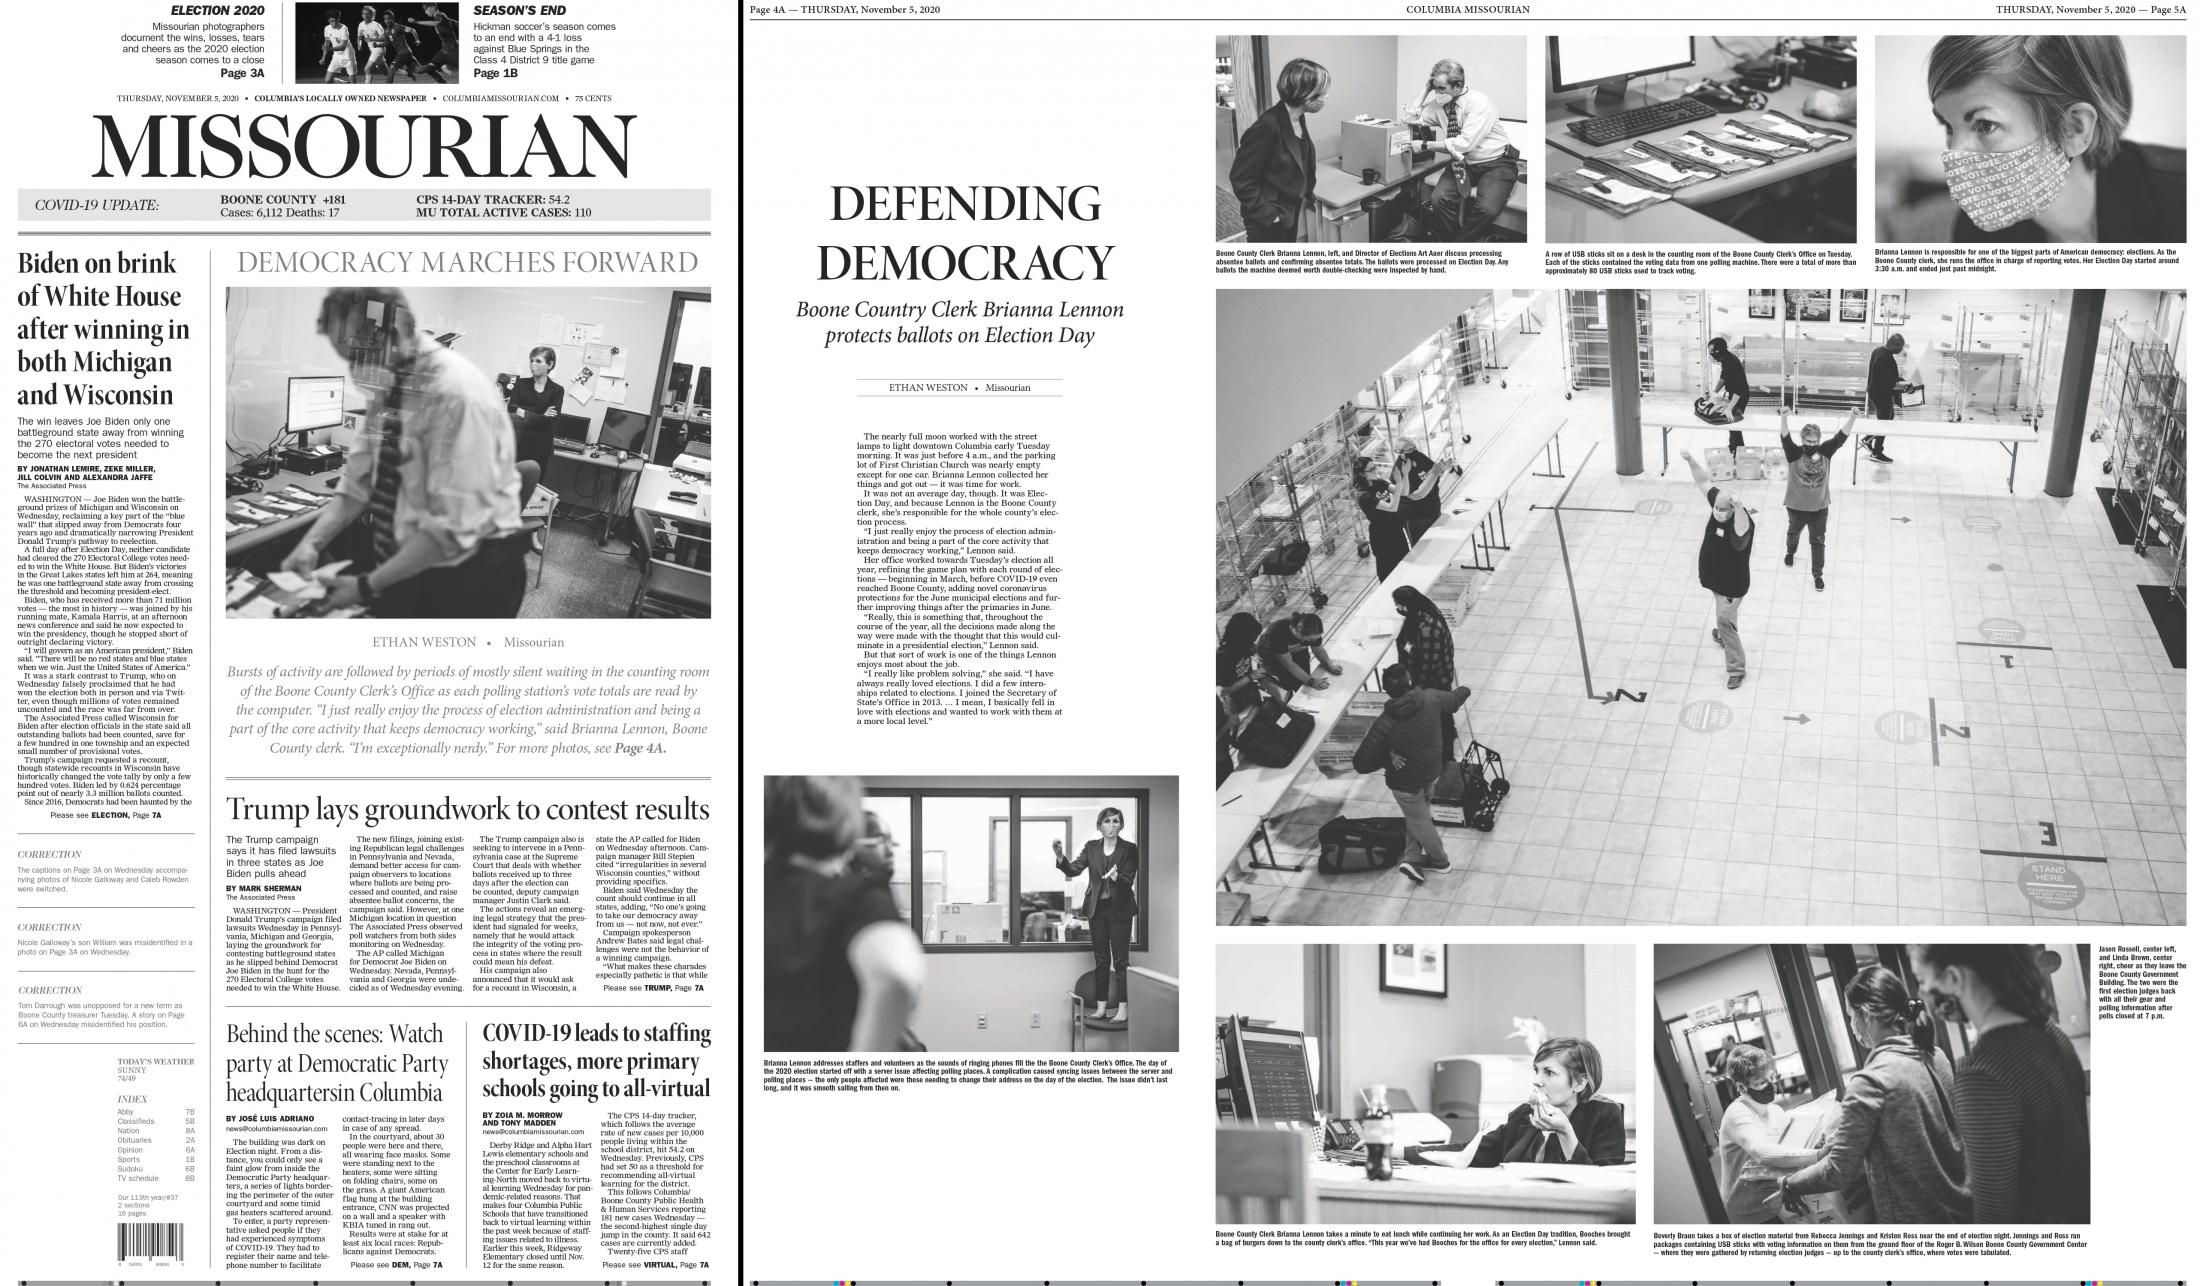 I worked with photographer Ethan Weston to edit his essay on the Boone County Clerk and her office and how Election Day looks for them. After editing his essay, I designed the digital product for the Columbia Missourian  website. I also sat down with designer Jacob Moscovitch to design the print edition featuring Weston's essay. This is the print product with the digital product located here .